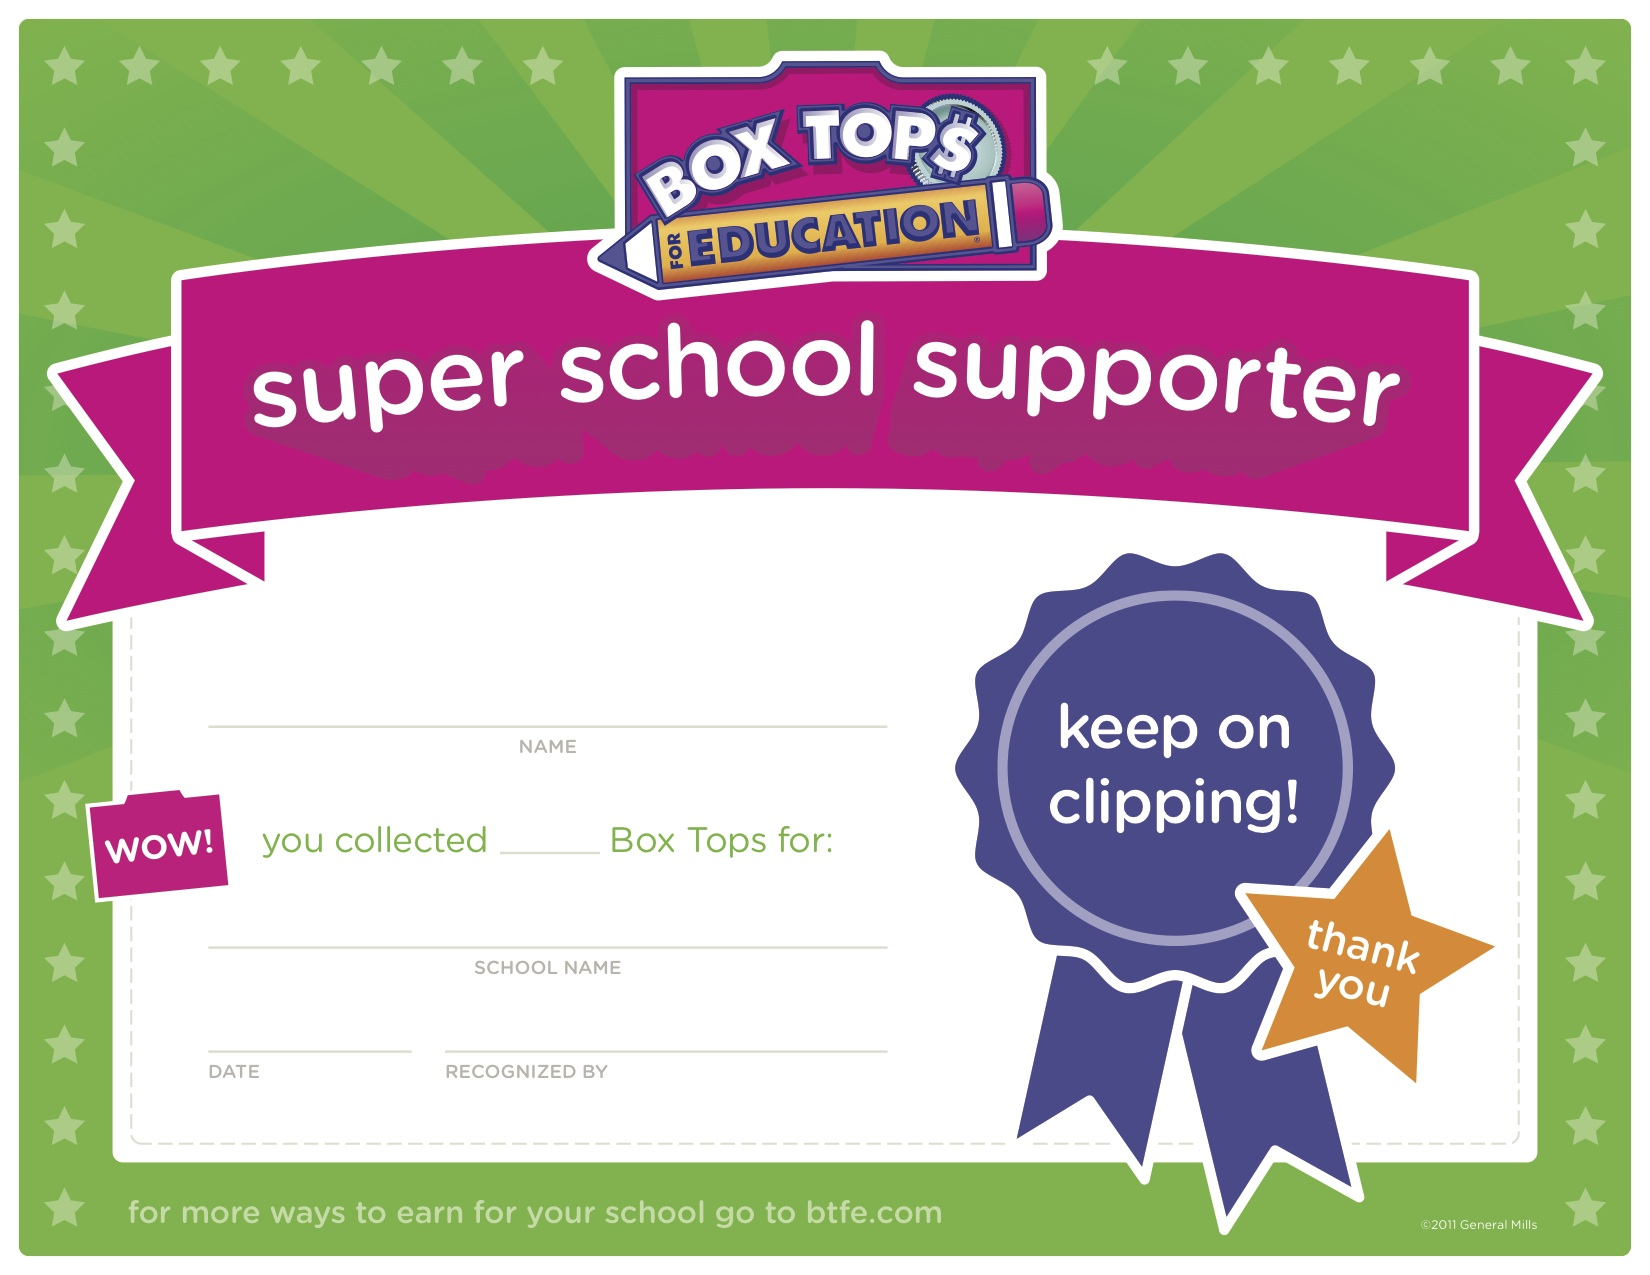 Boxtops For Education Clipart.